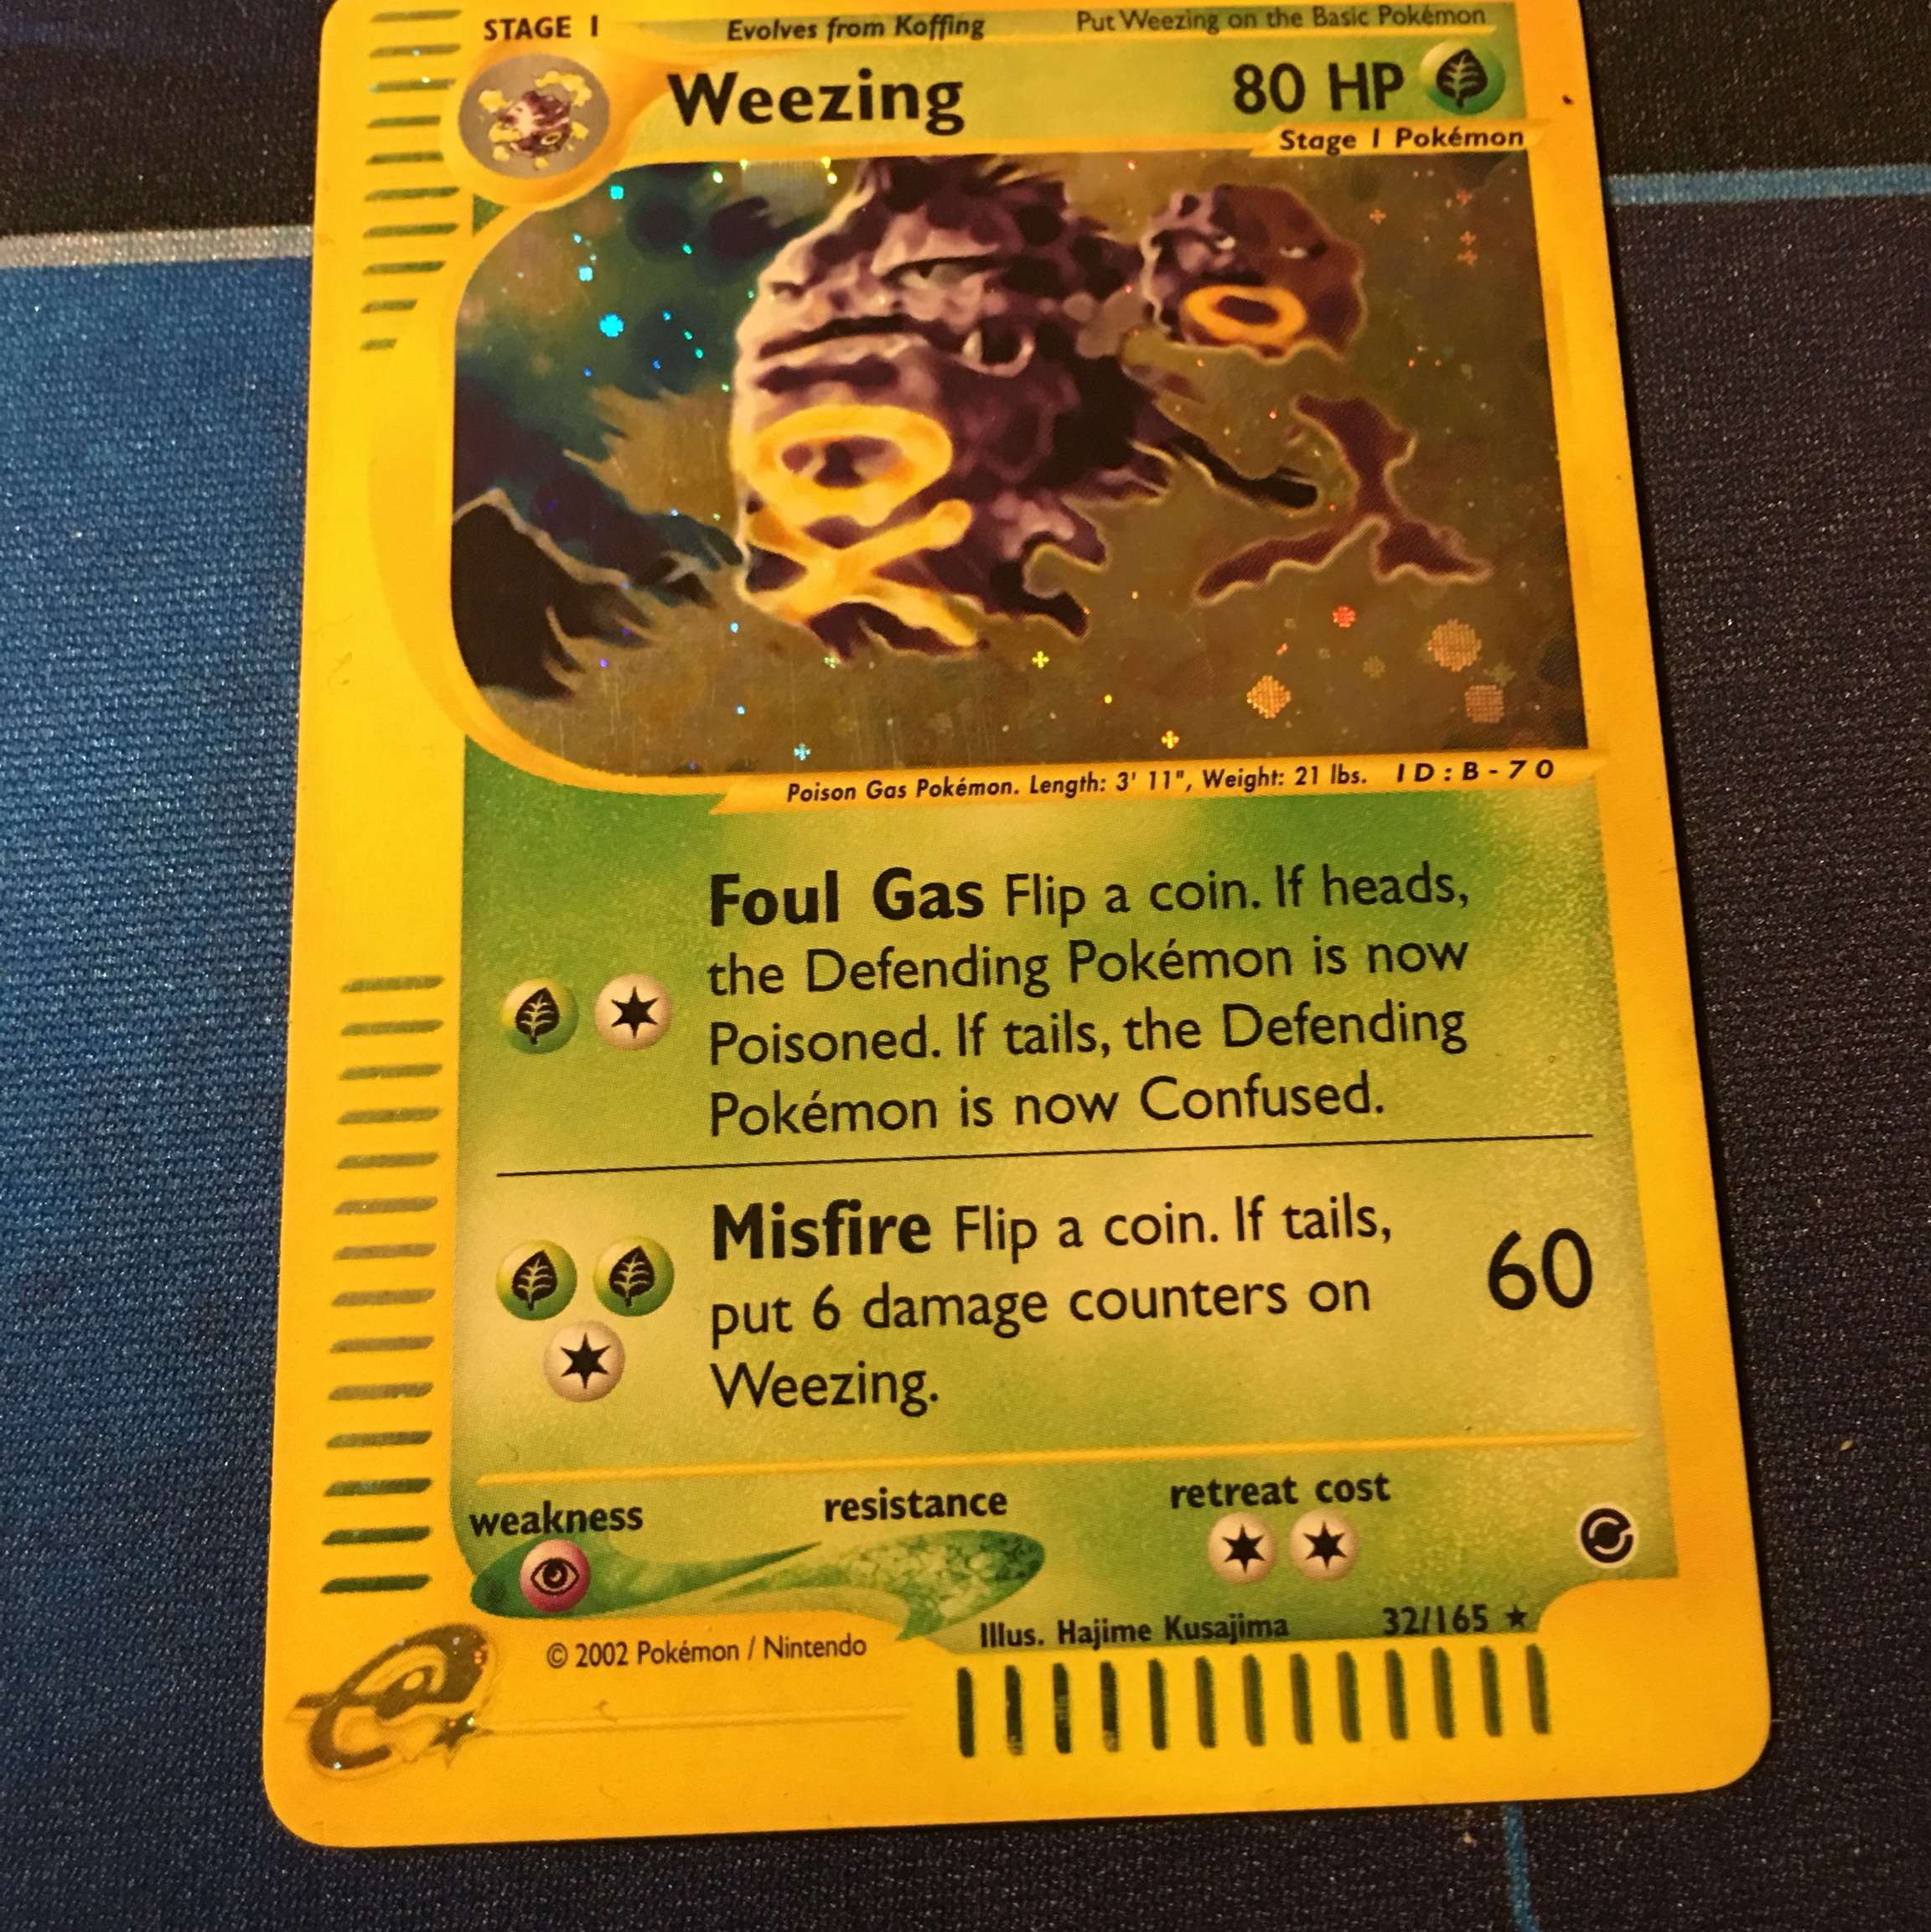 Weezing e reader Pokemon card All items come    - Depop